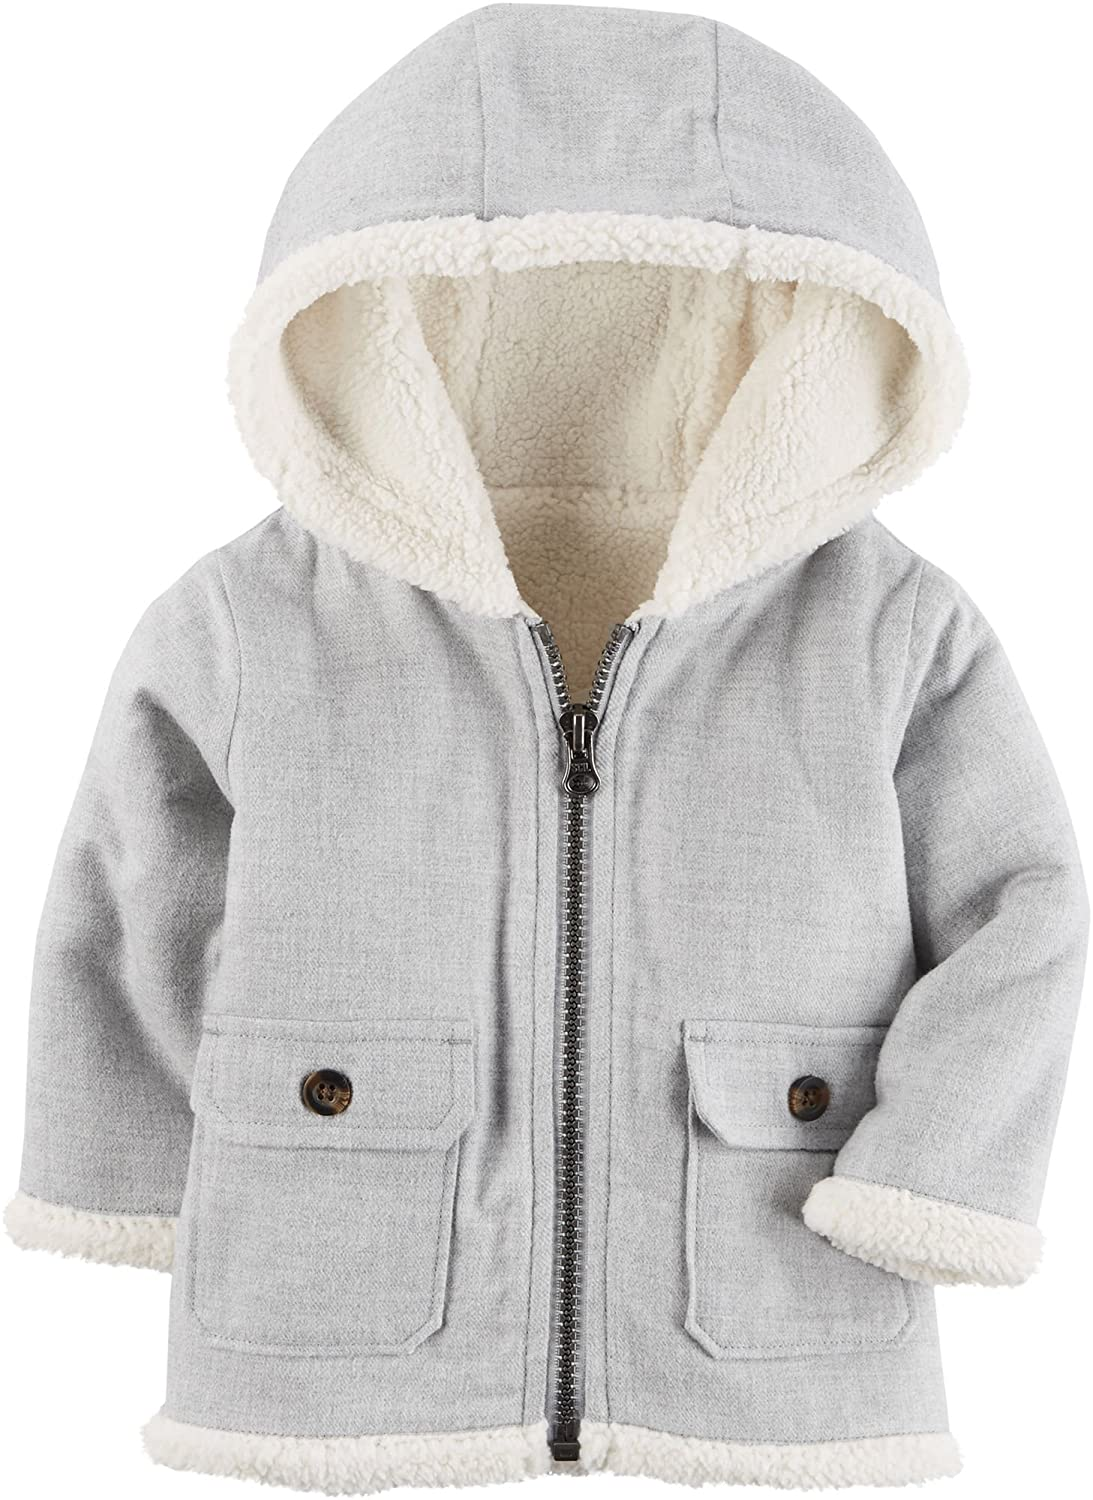 Carter's Baby Boys' 3M-24M Hooded Sherpa Zip Jacket